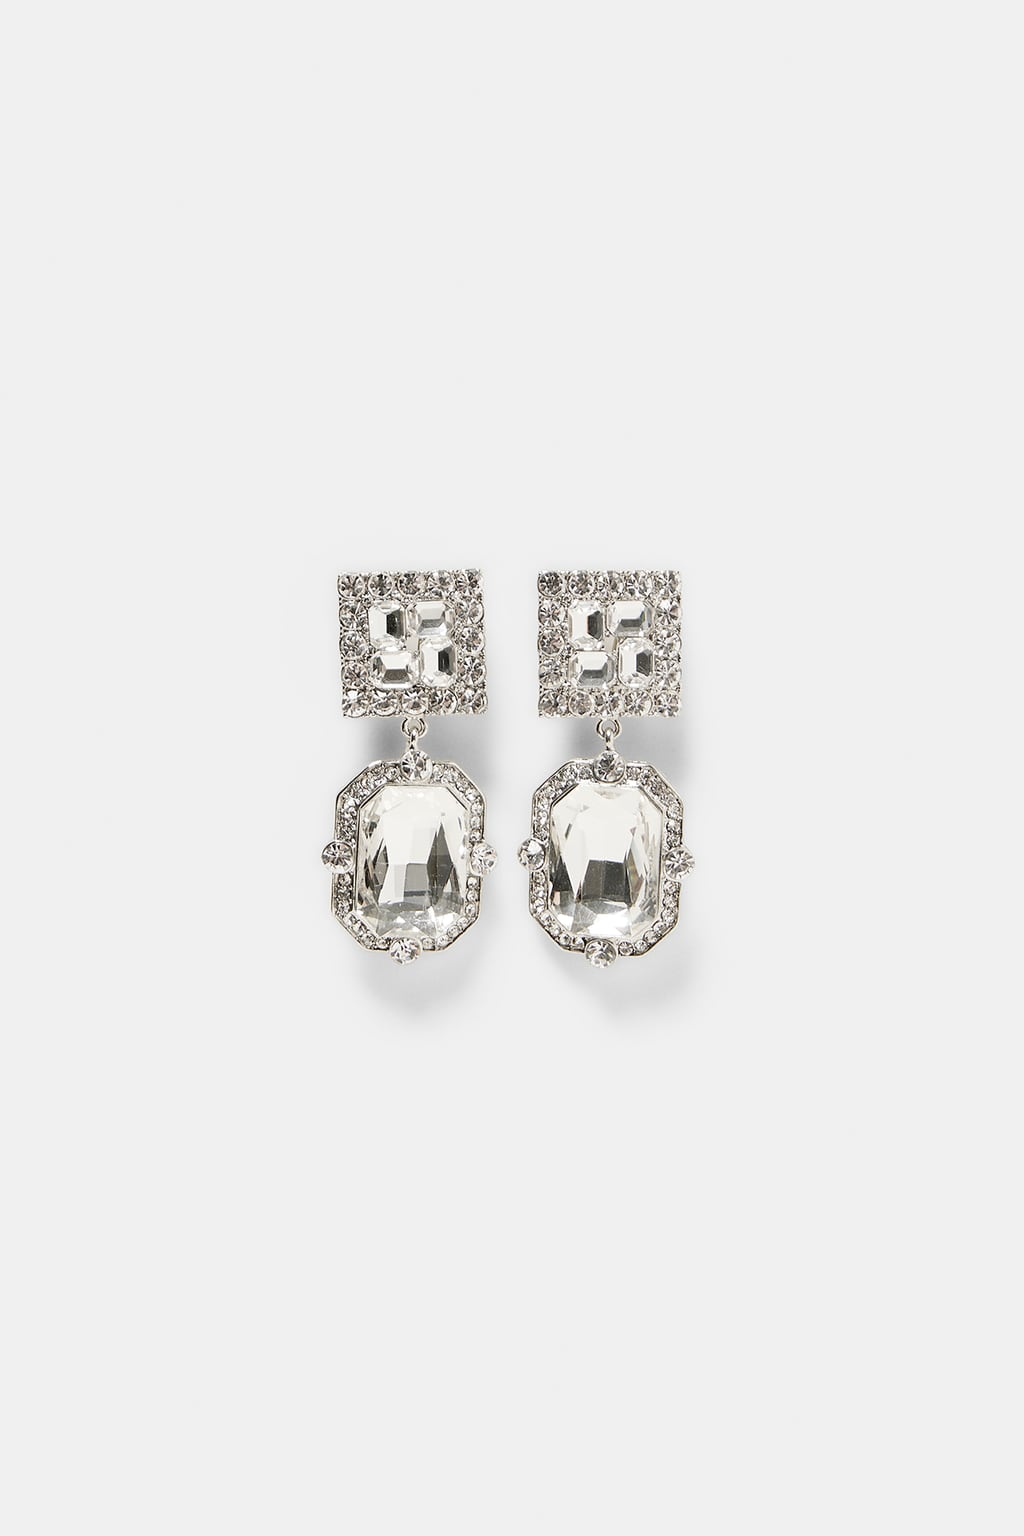 ZARA Jewel Earrings- $19.99